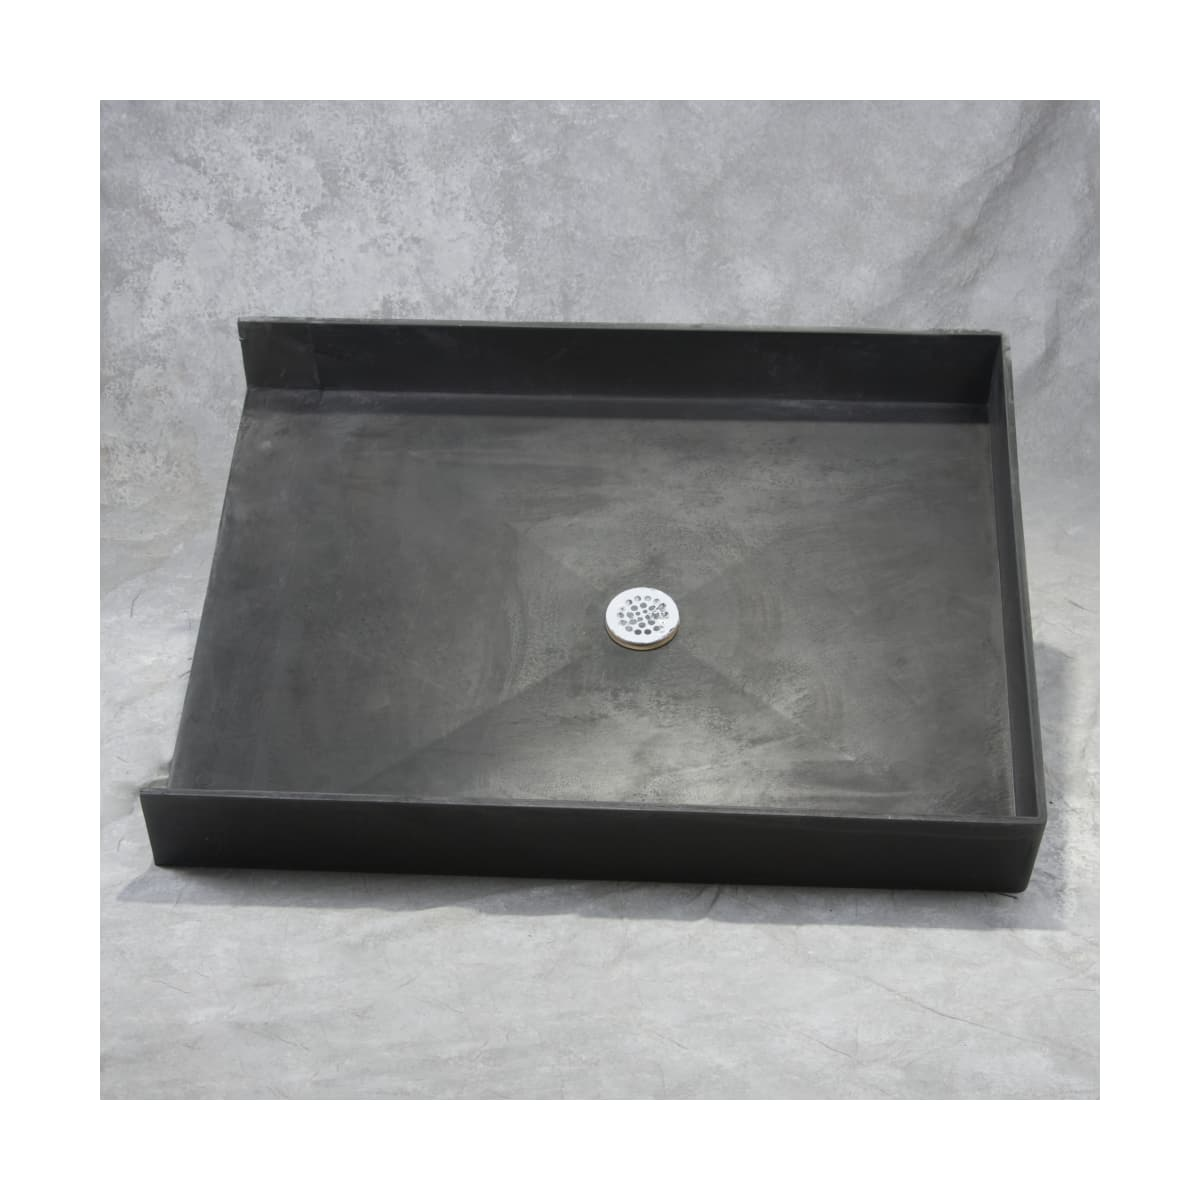 Tile Redi Barrier Free Shower Pan.Tile Redi 4638cbf